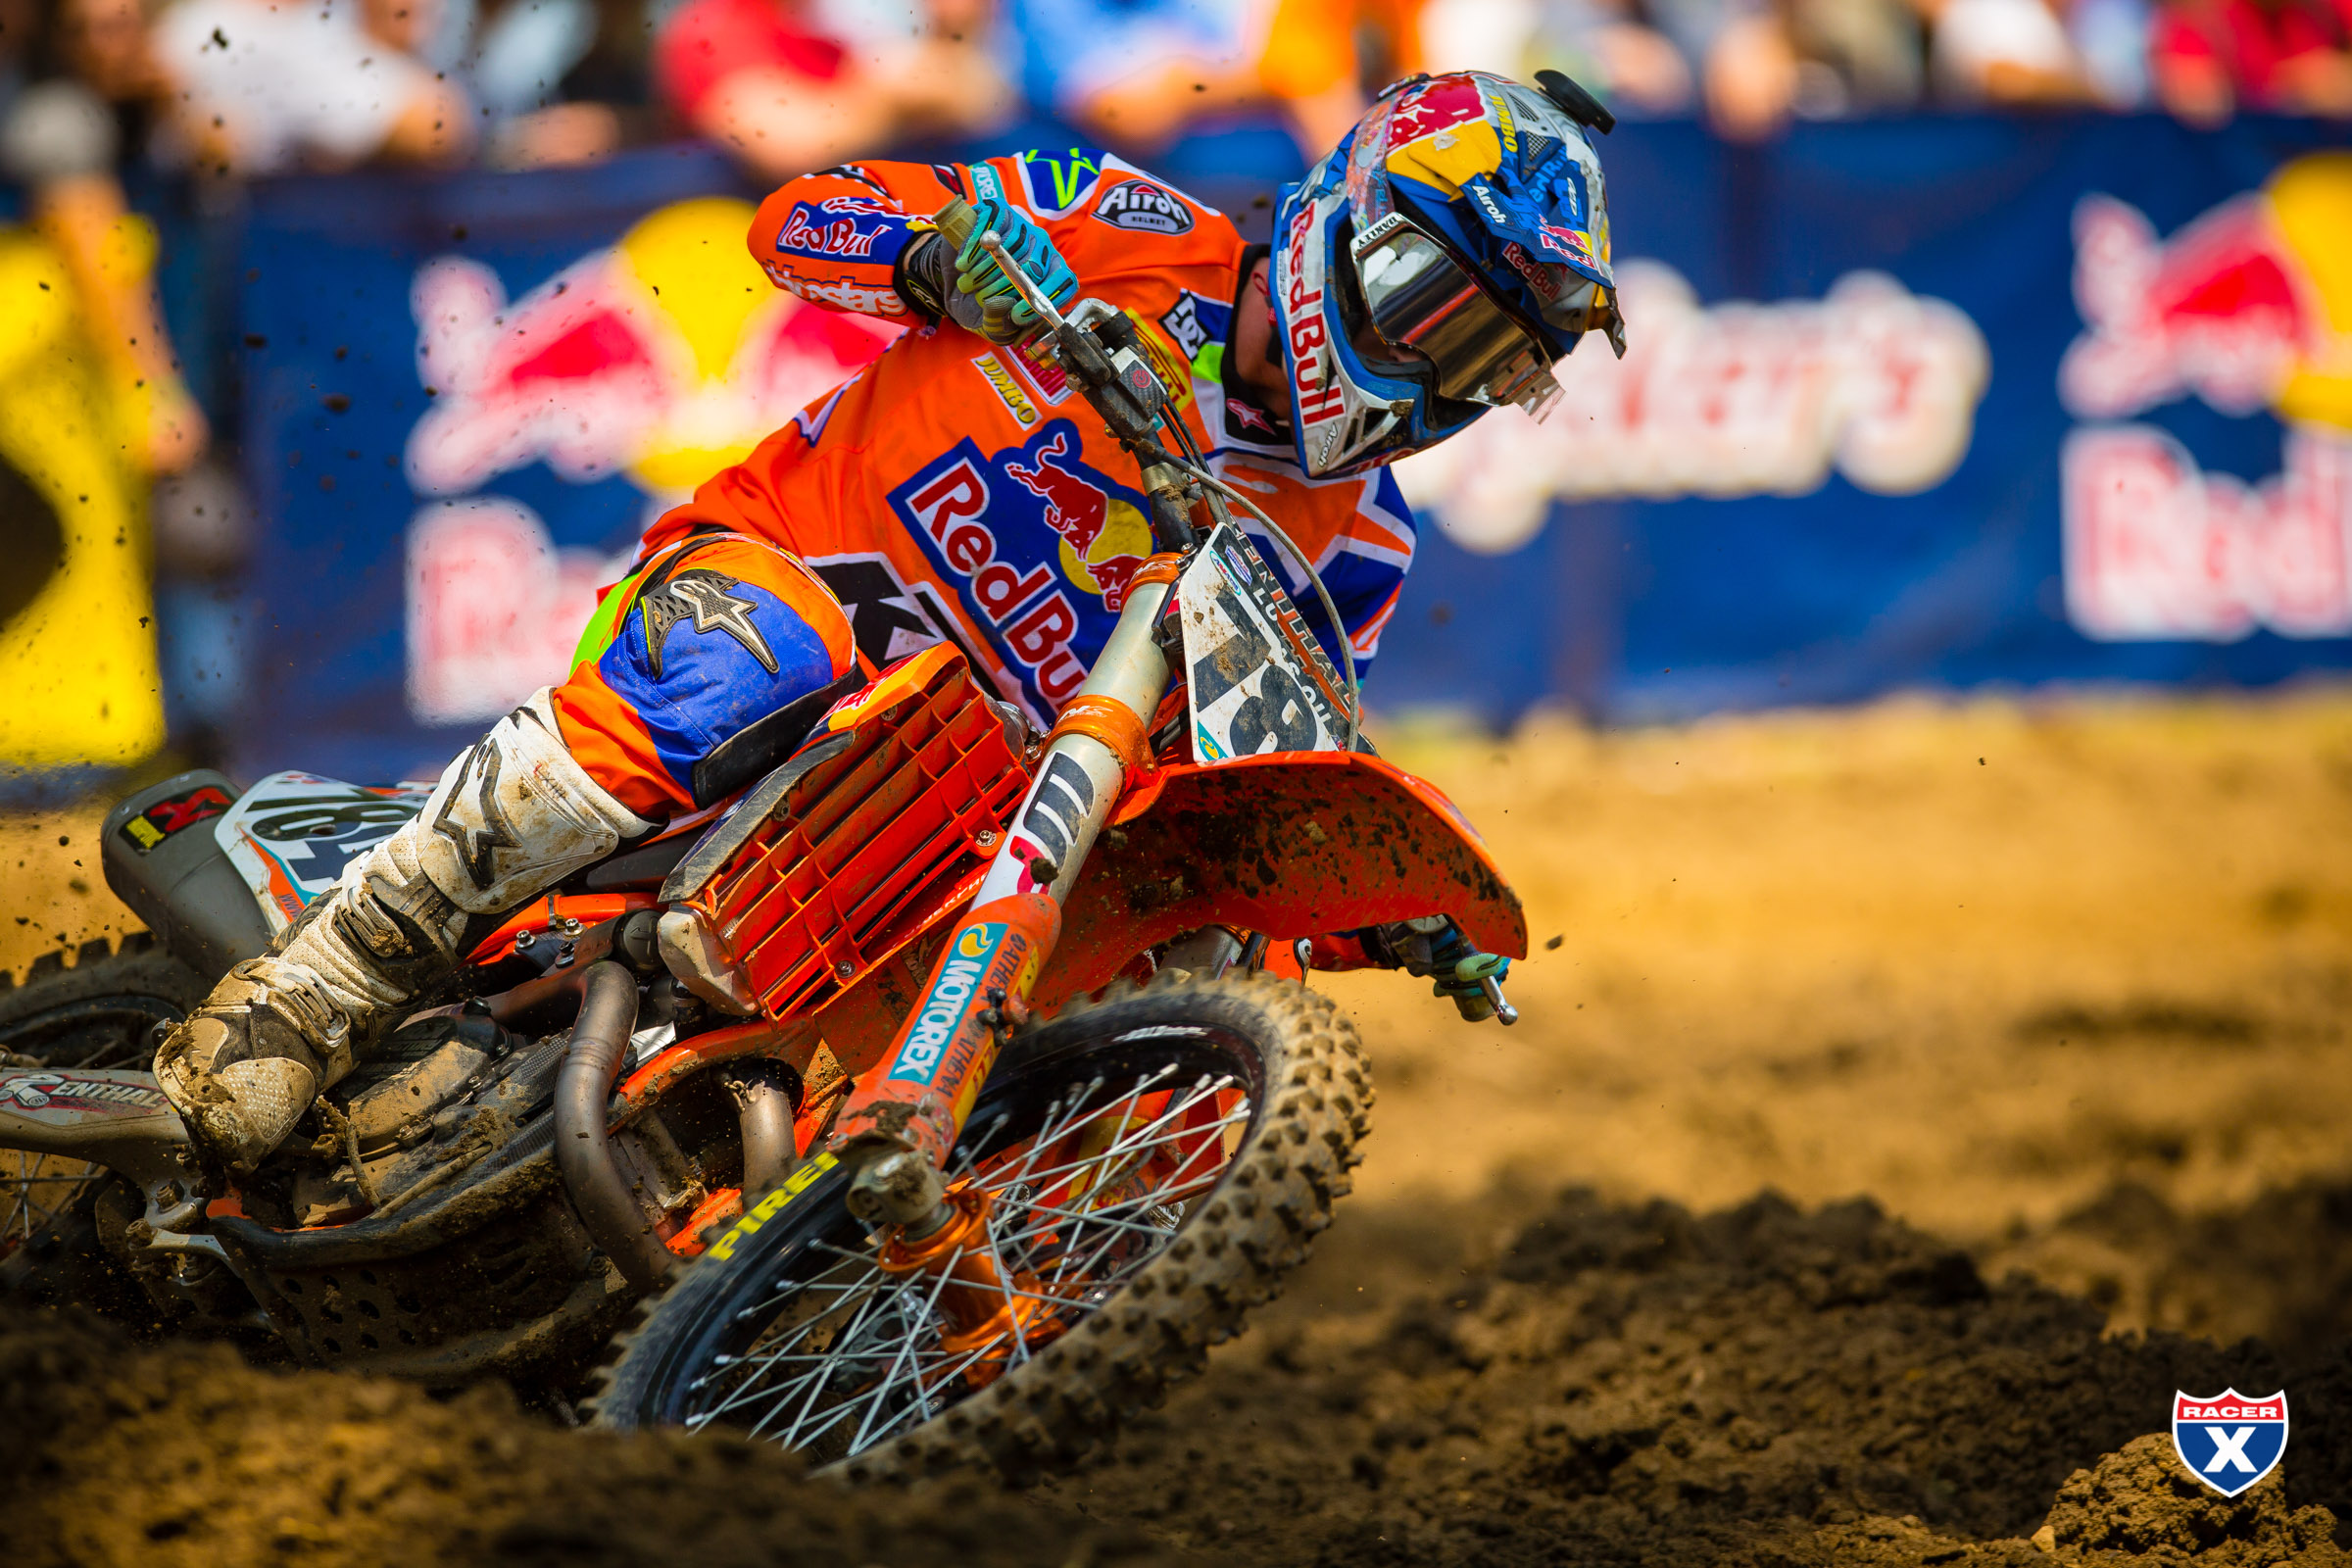 Herlings_MX17_Ironman_JK_1155